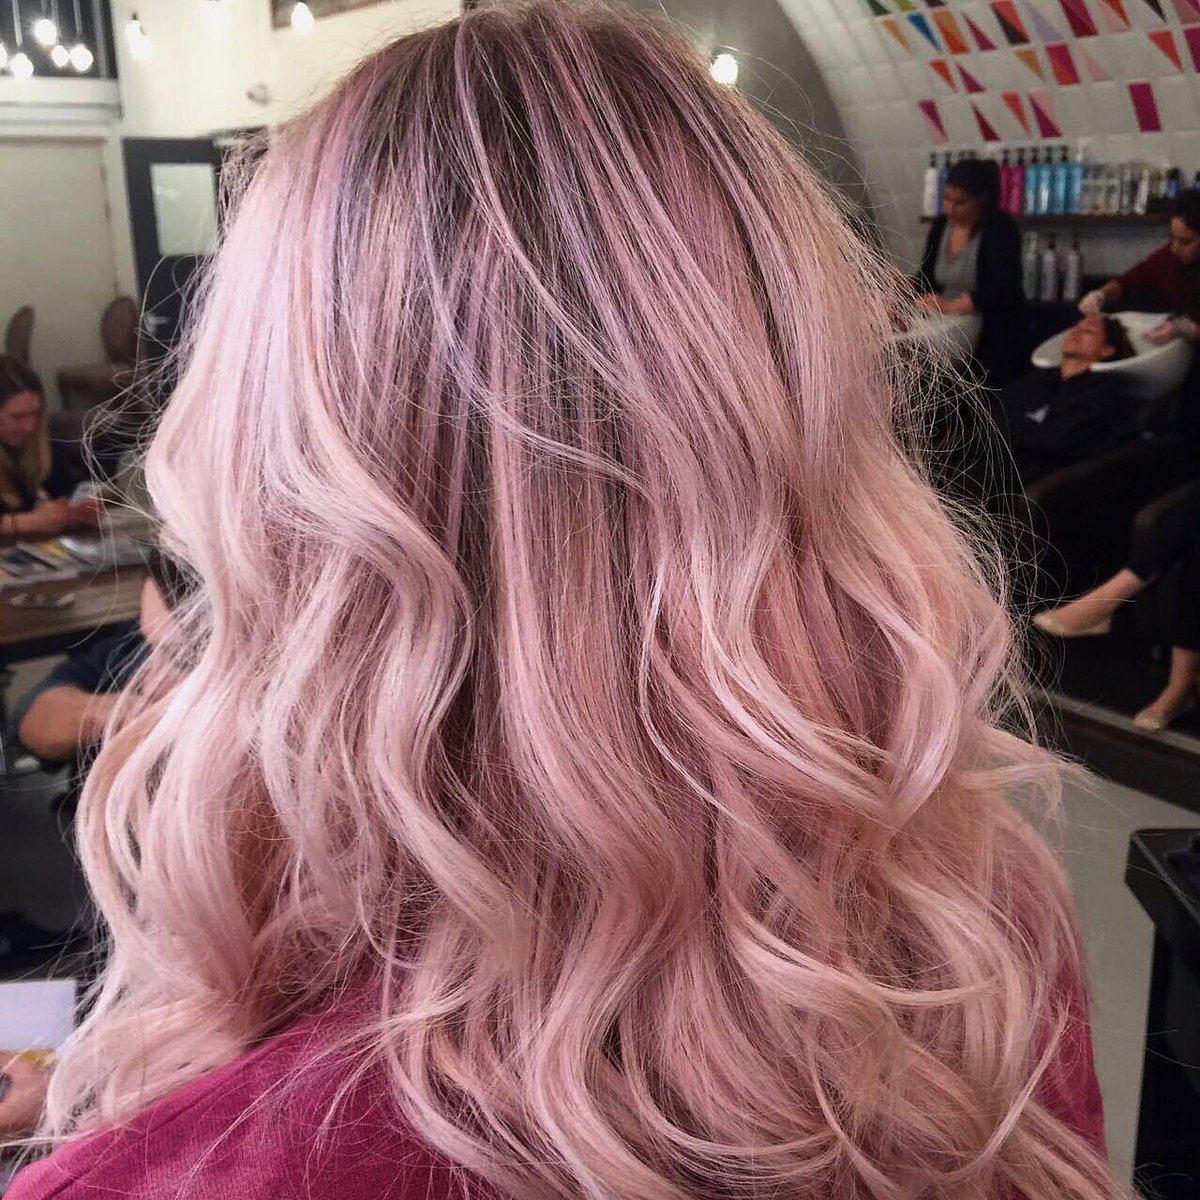 Live True London On Twitter True Colour Pastel Pink Balayage By Orlando At Clapham Livetruelondon Pink Pinkhair Pinkhairdontcare Fashioncolour Haircolour Hair Https T Co Hxgh5bn1ut